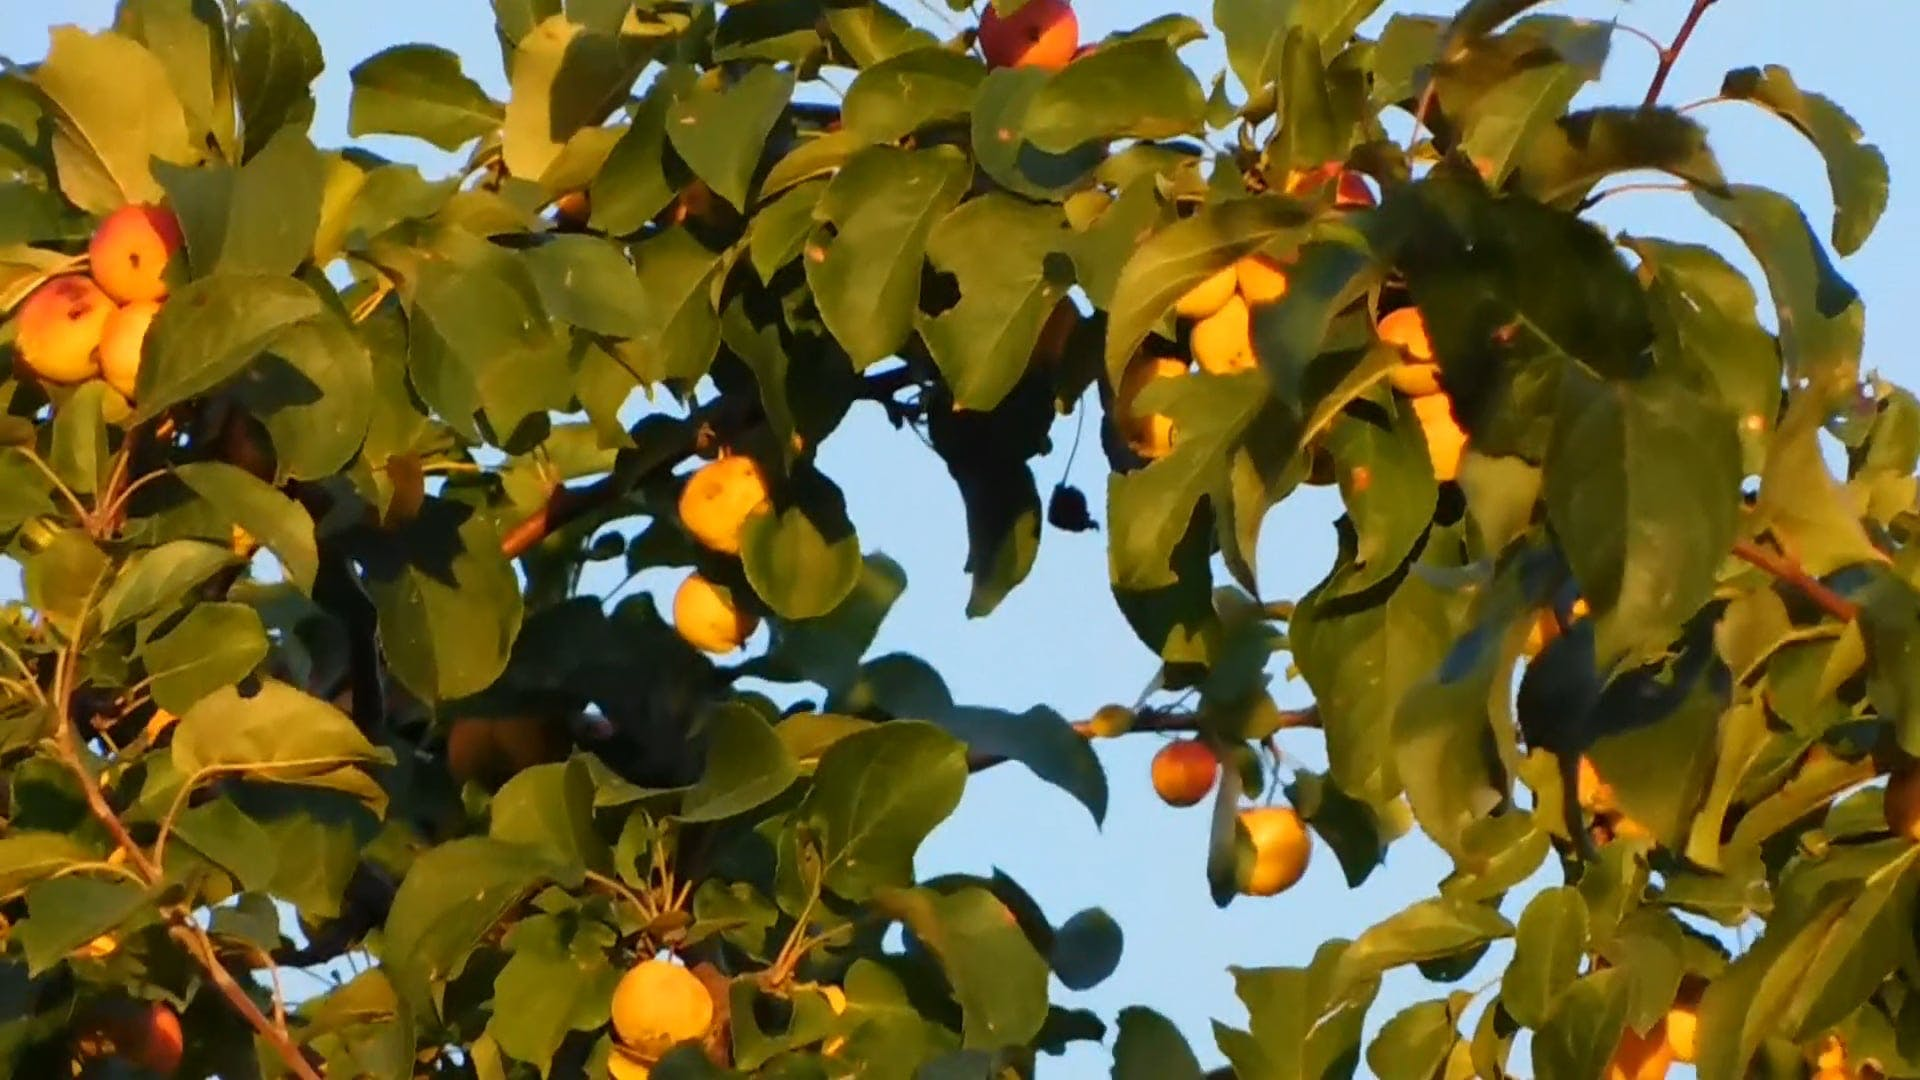 Tall Tree With Yellow Fruits